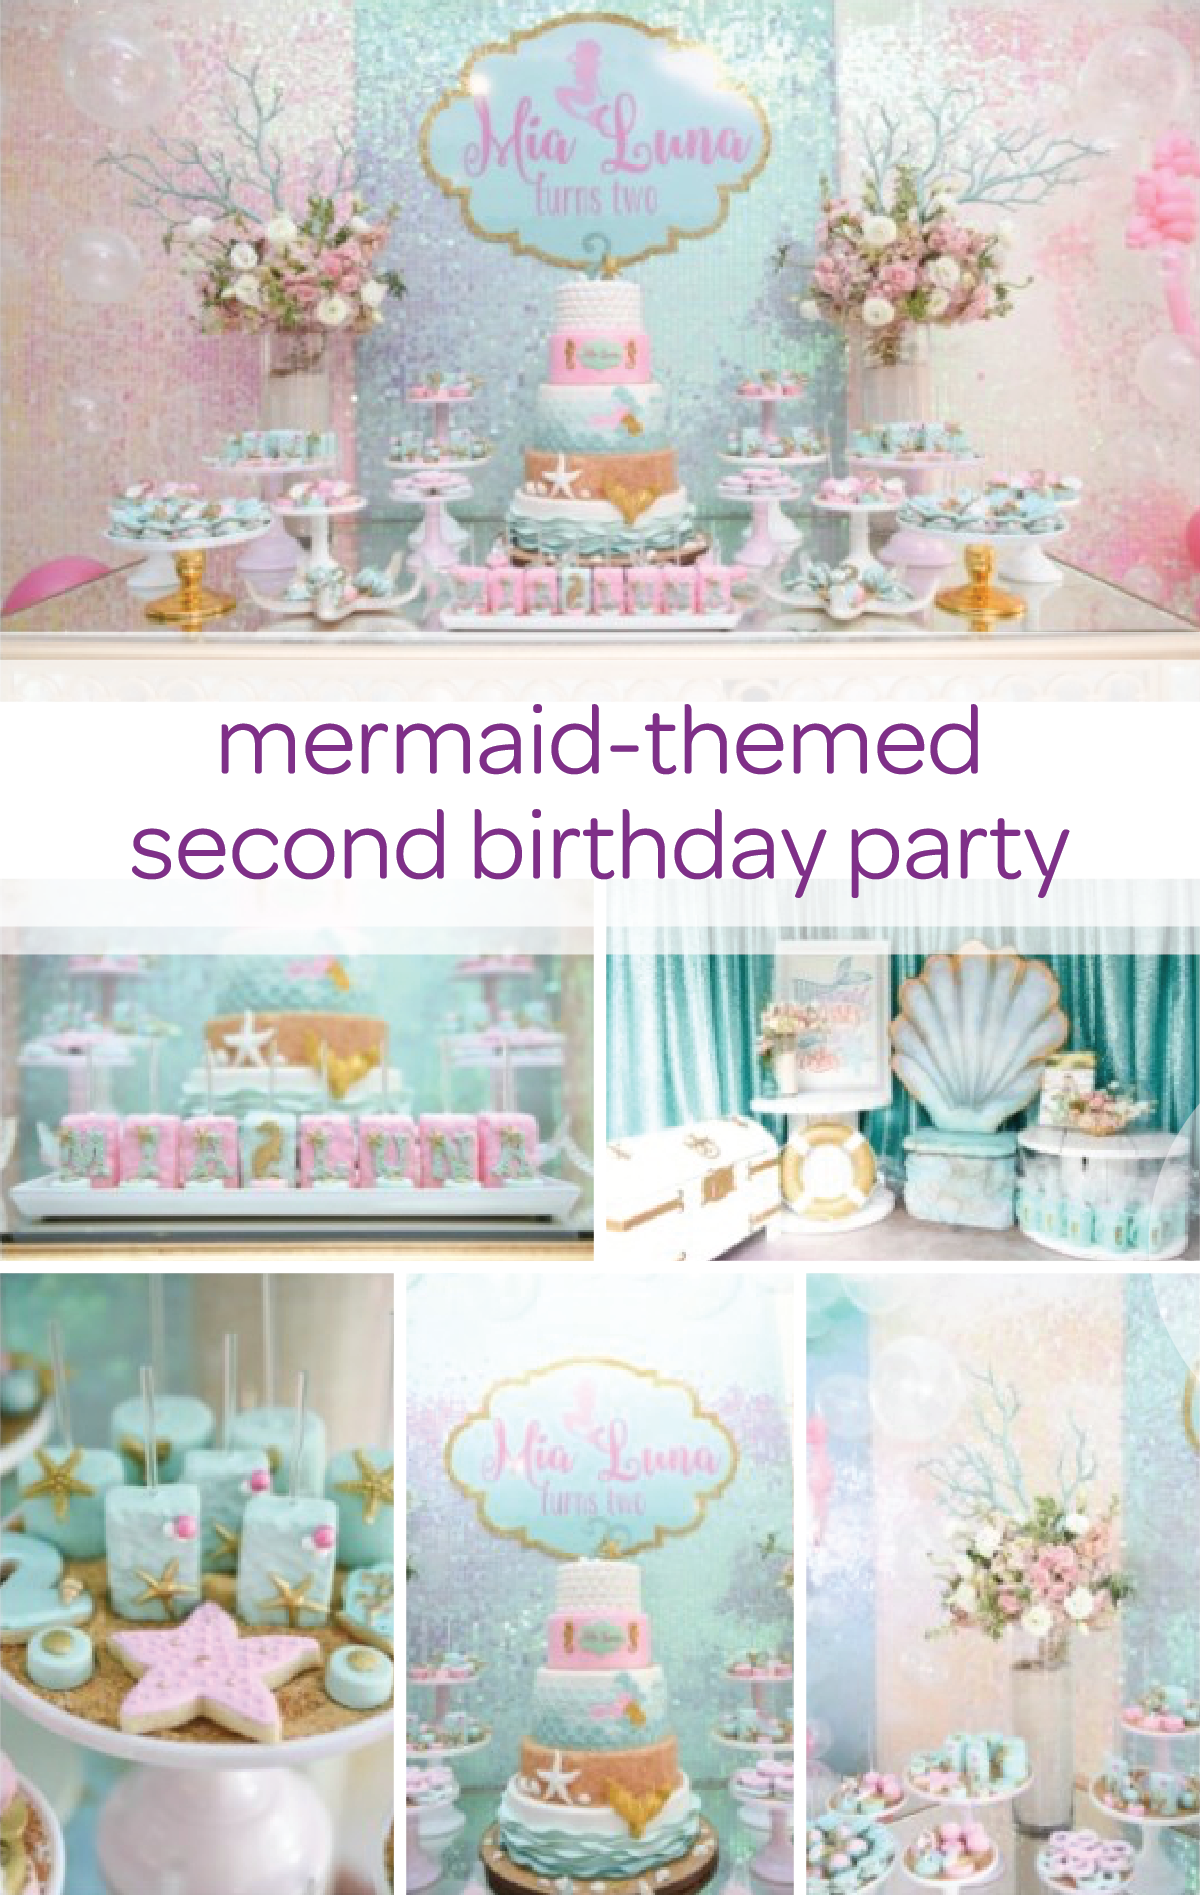 Throw Your Little Girl This Spectacular Mermaid Themed Second Birthday Party From Sparkling Accessories And Favors To A Gorgeous Dessert Display